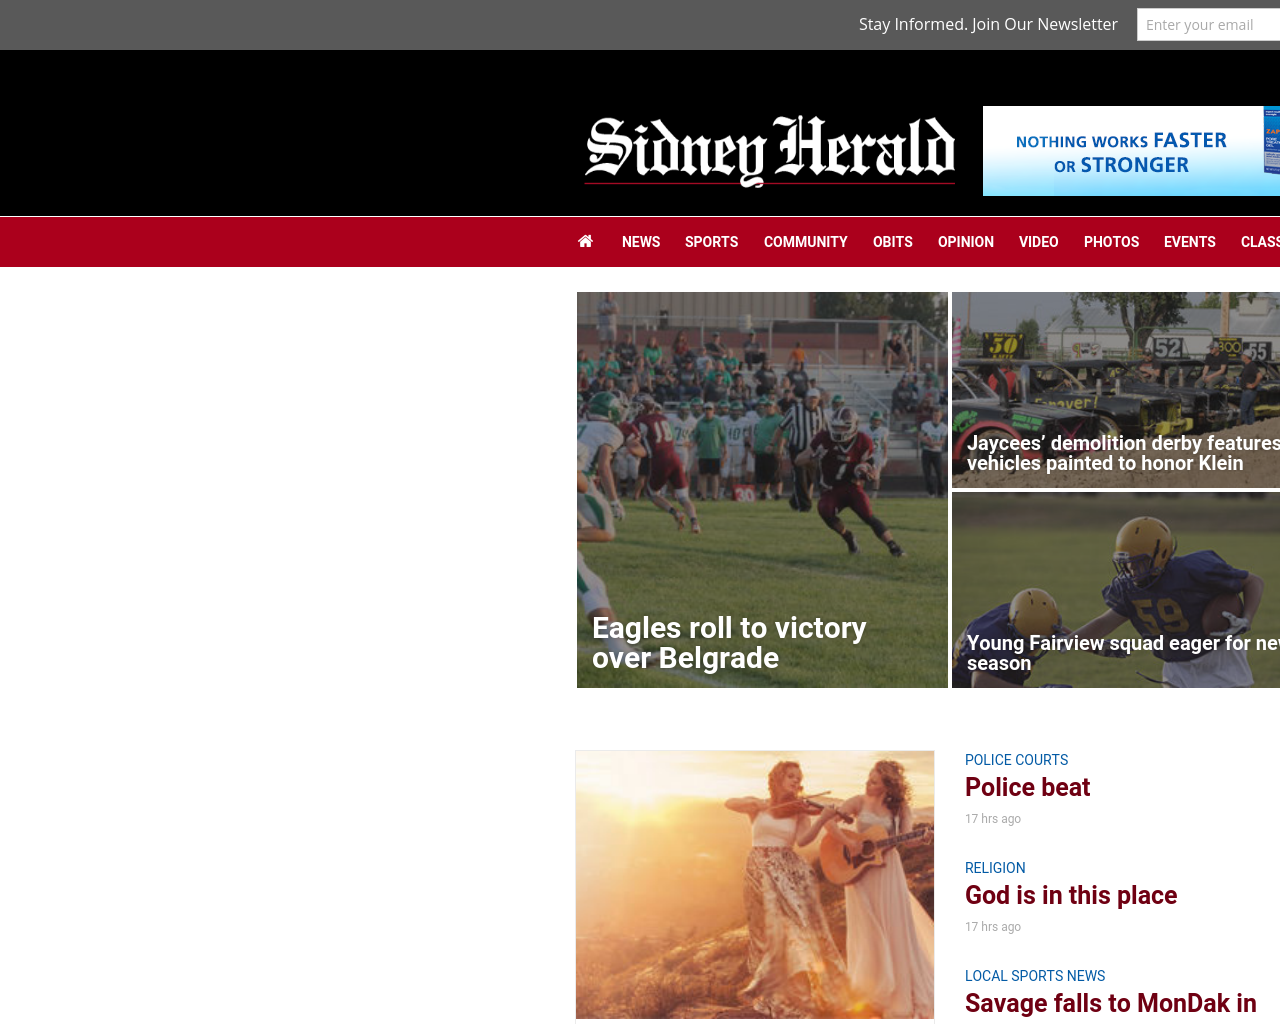 Sidney-Herald-Advertising-Reviews-Pricing